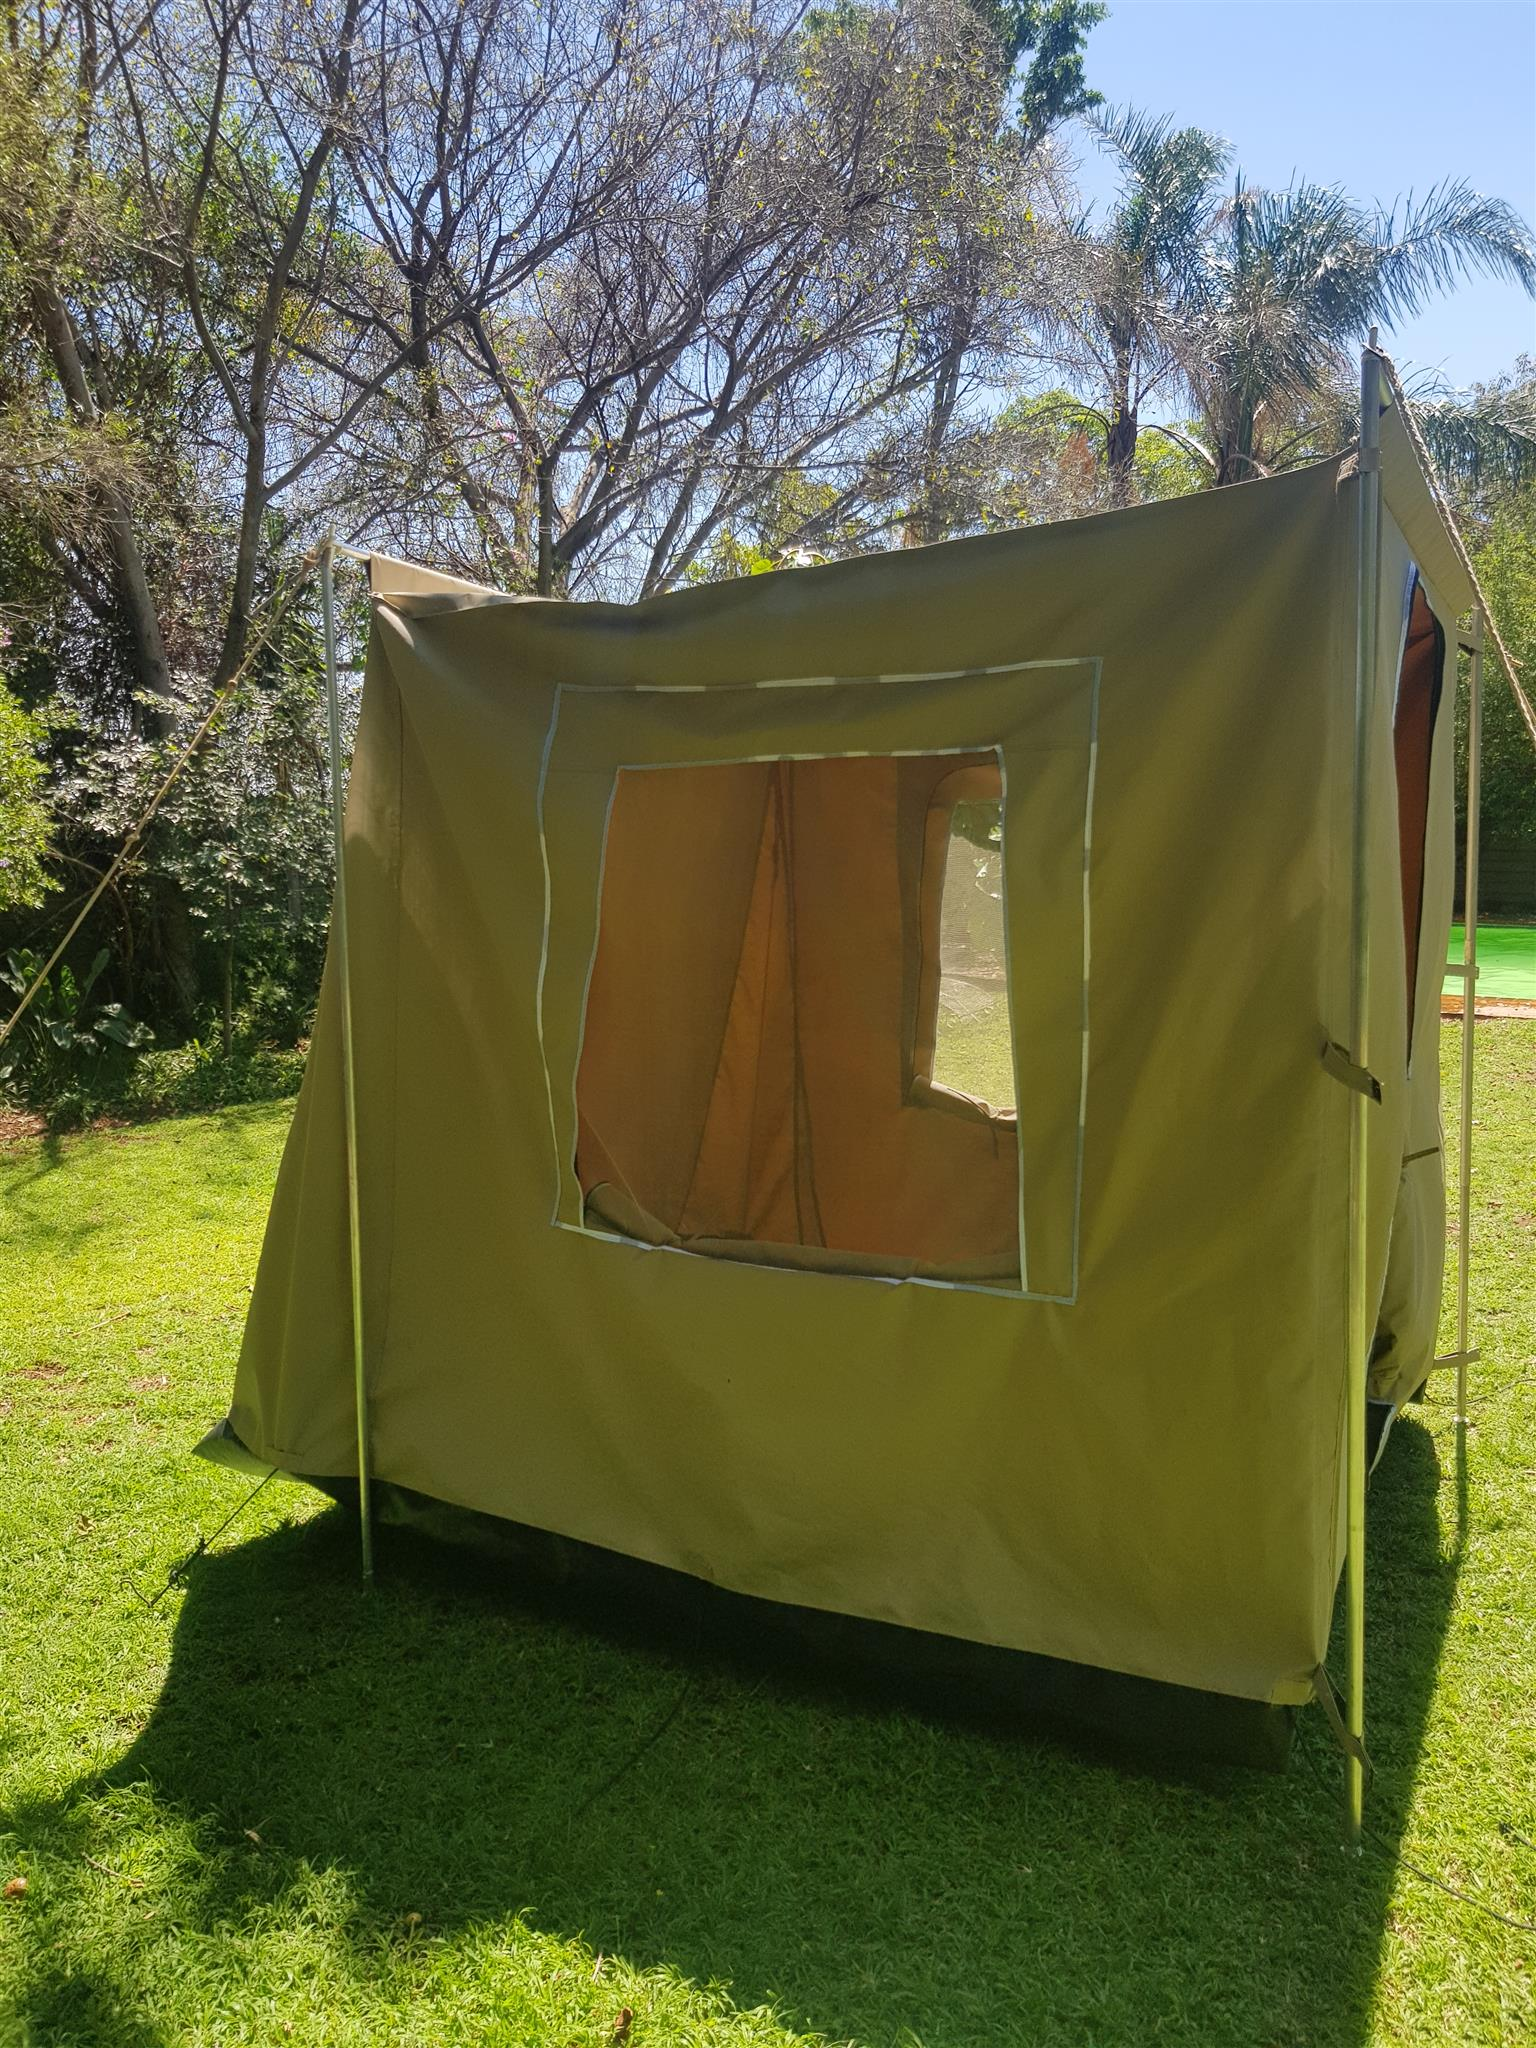 Multiroom with groundsheet compatible to most medium sized caravans,can stand on its own also